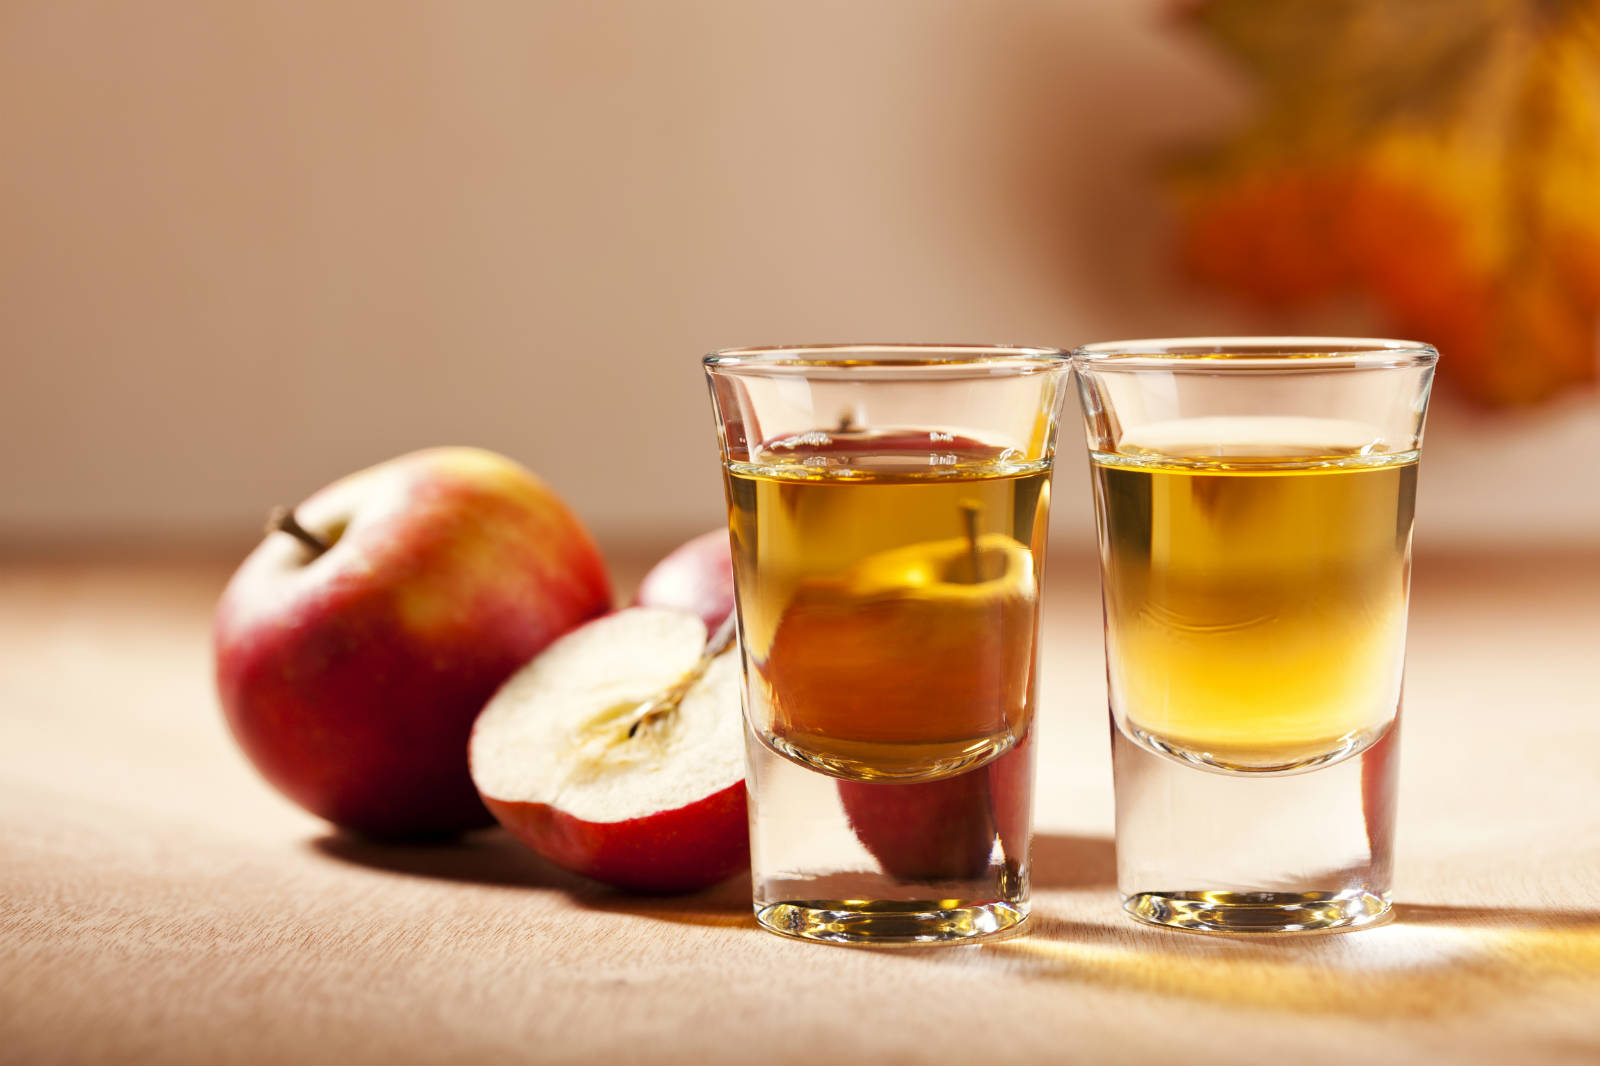 Apple cider Vinegar To Get Rid Of Pimple On Nose